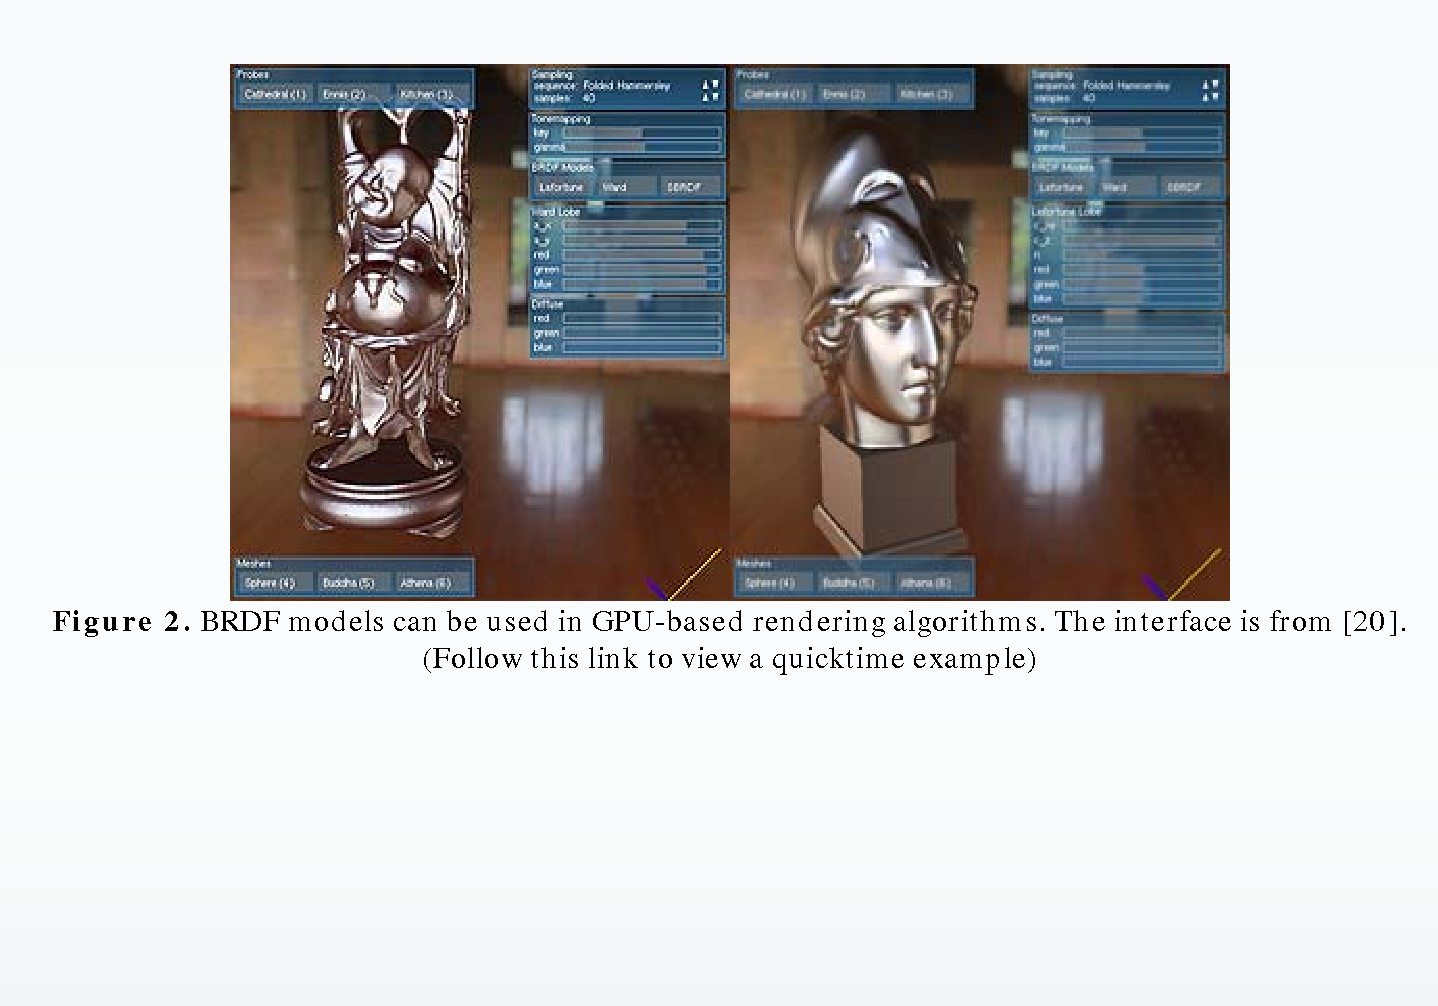 Figure 2 from A survey of BRDF models for computer graphics